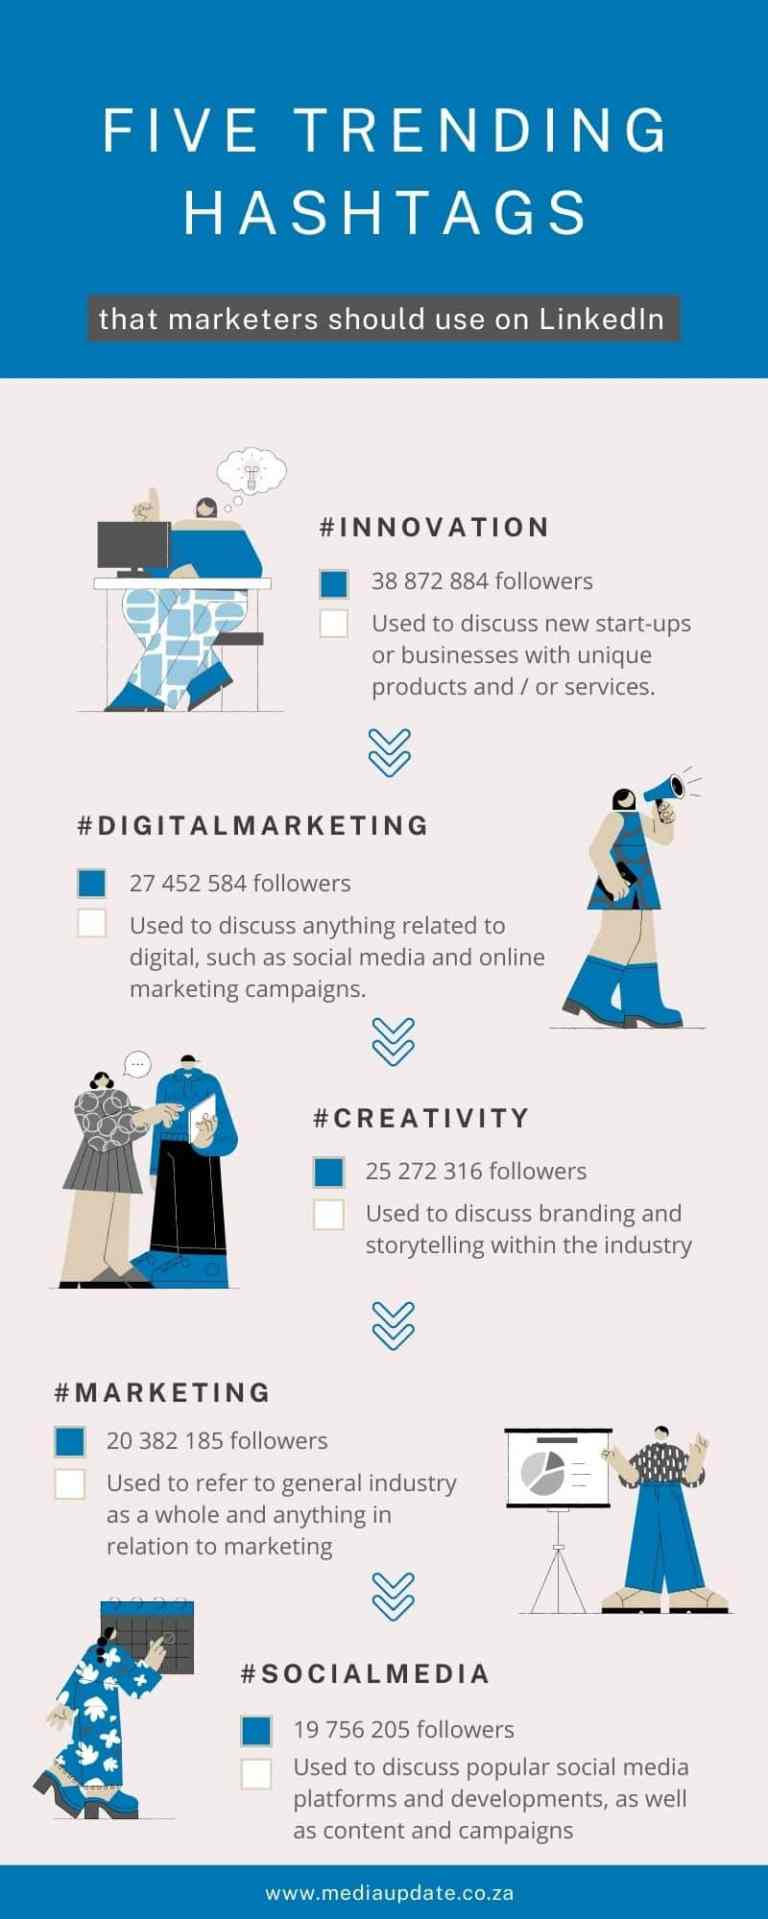 5 Hashtags You Should Use on LinkedIn [Infographic]